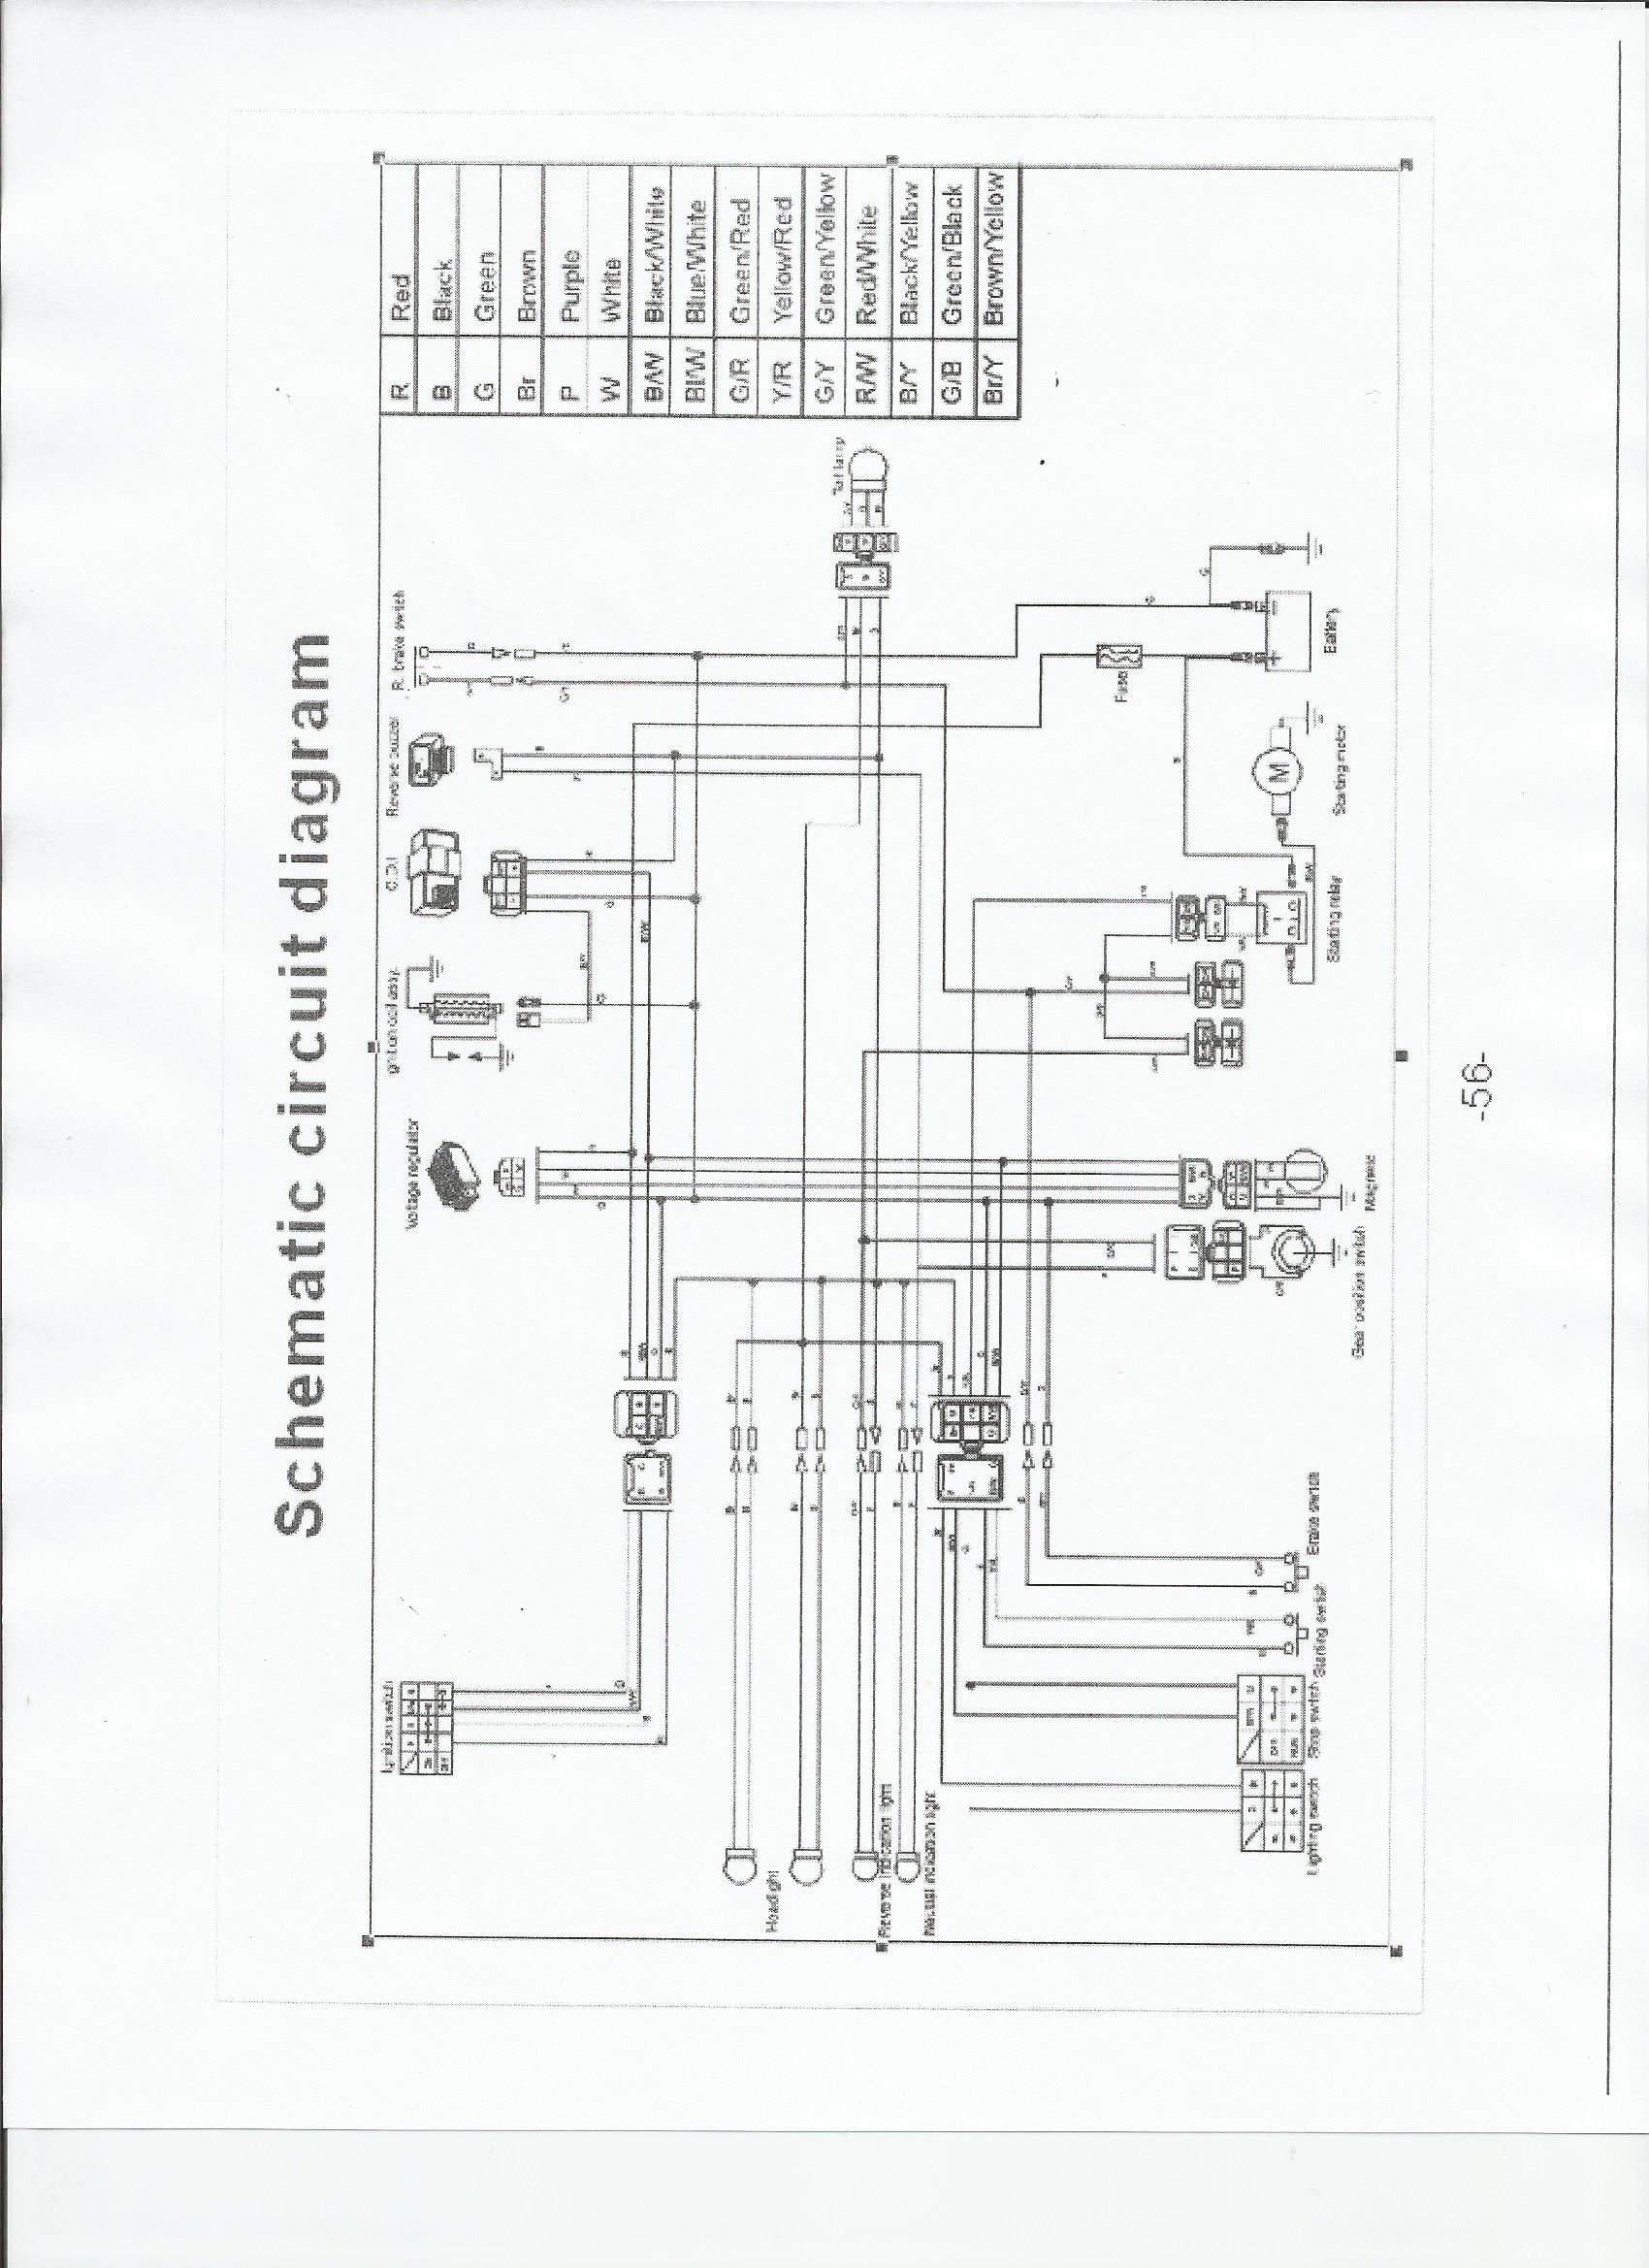 schematic wiring the wiring diagram taotao mini and youth atv wiring schematic familygokarts support schematic